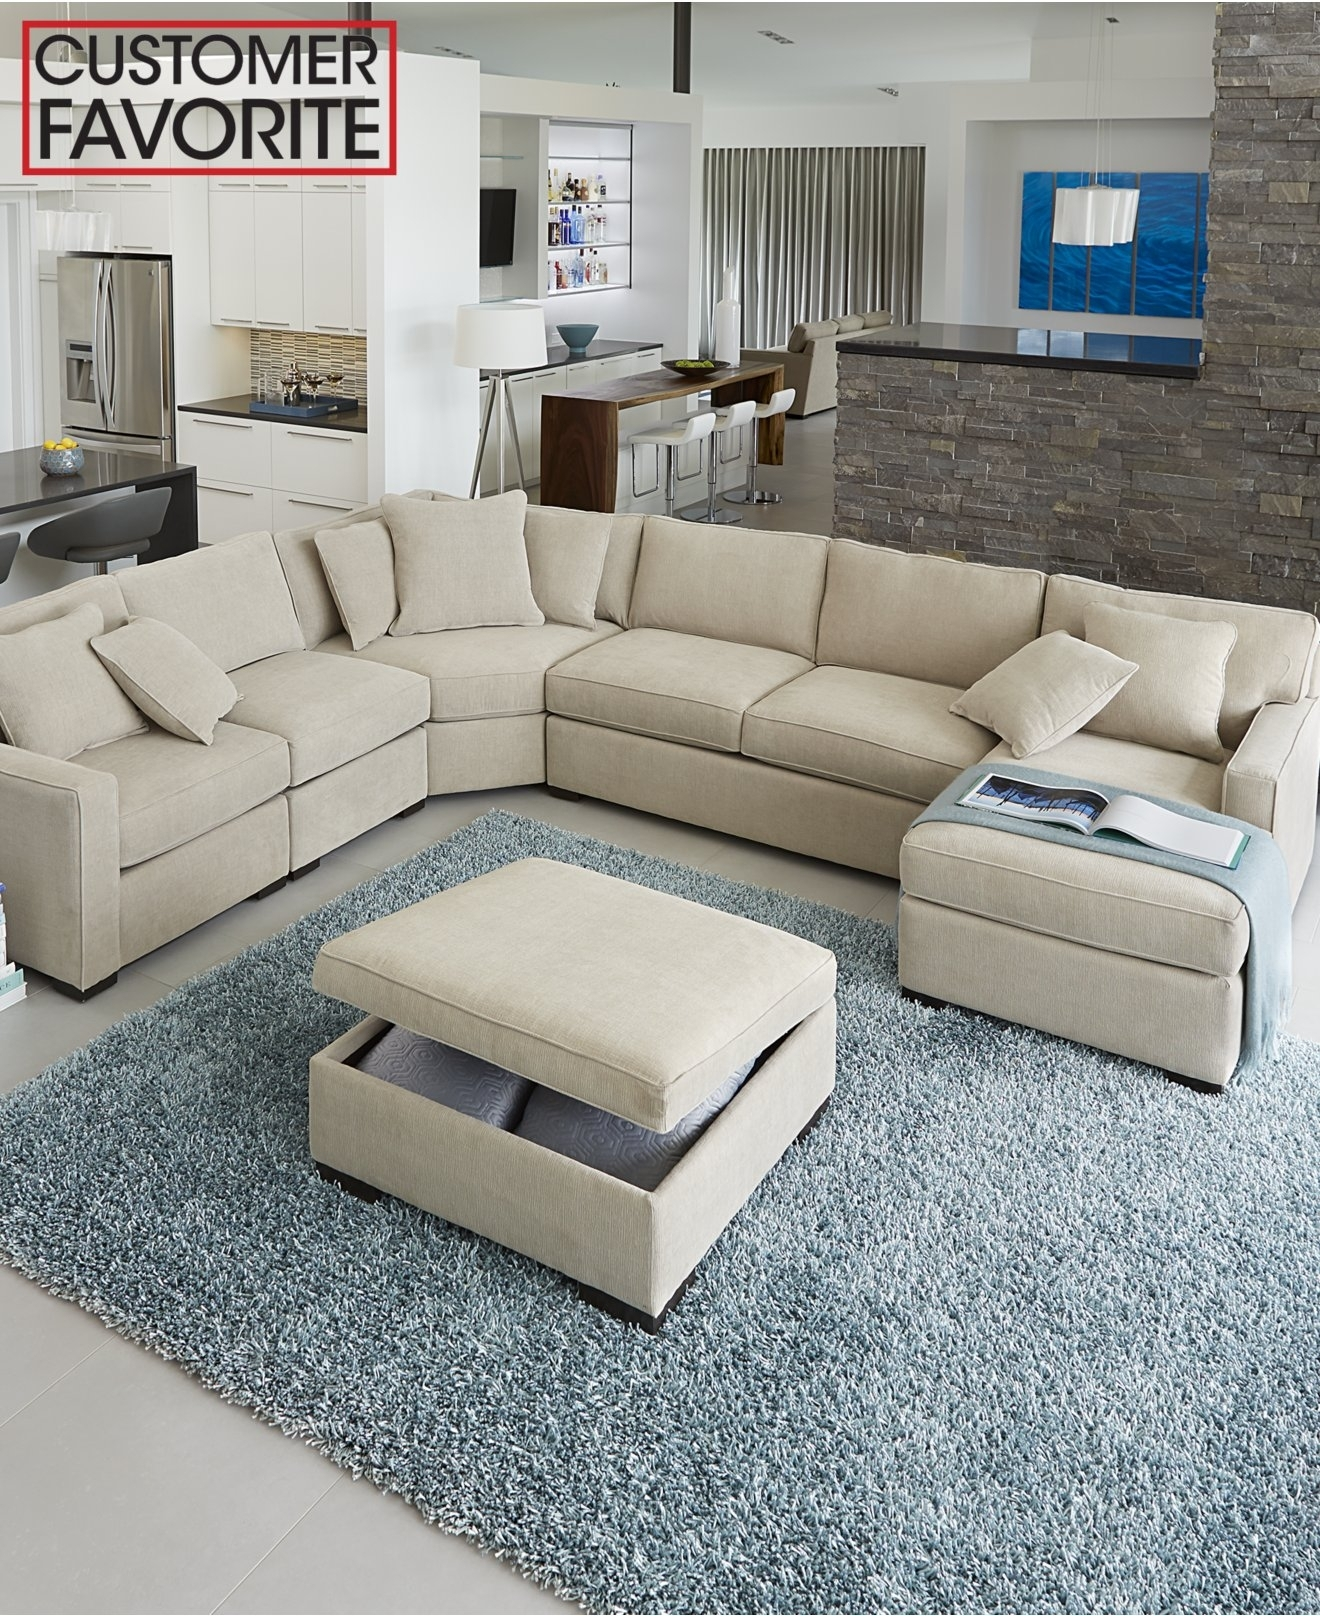 Radley Fabric Sectional Sofa Collection, Created For Macy's Pertaining To Macys Sectional Sofas (View 7 of 10)